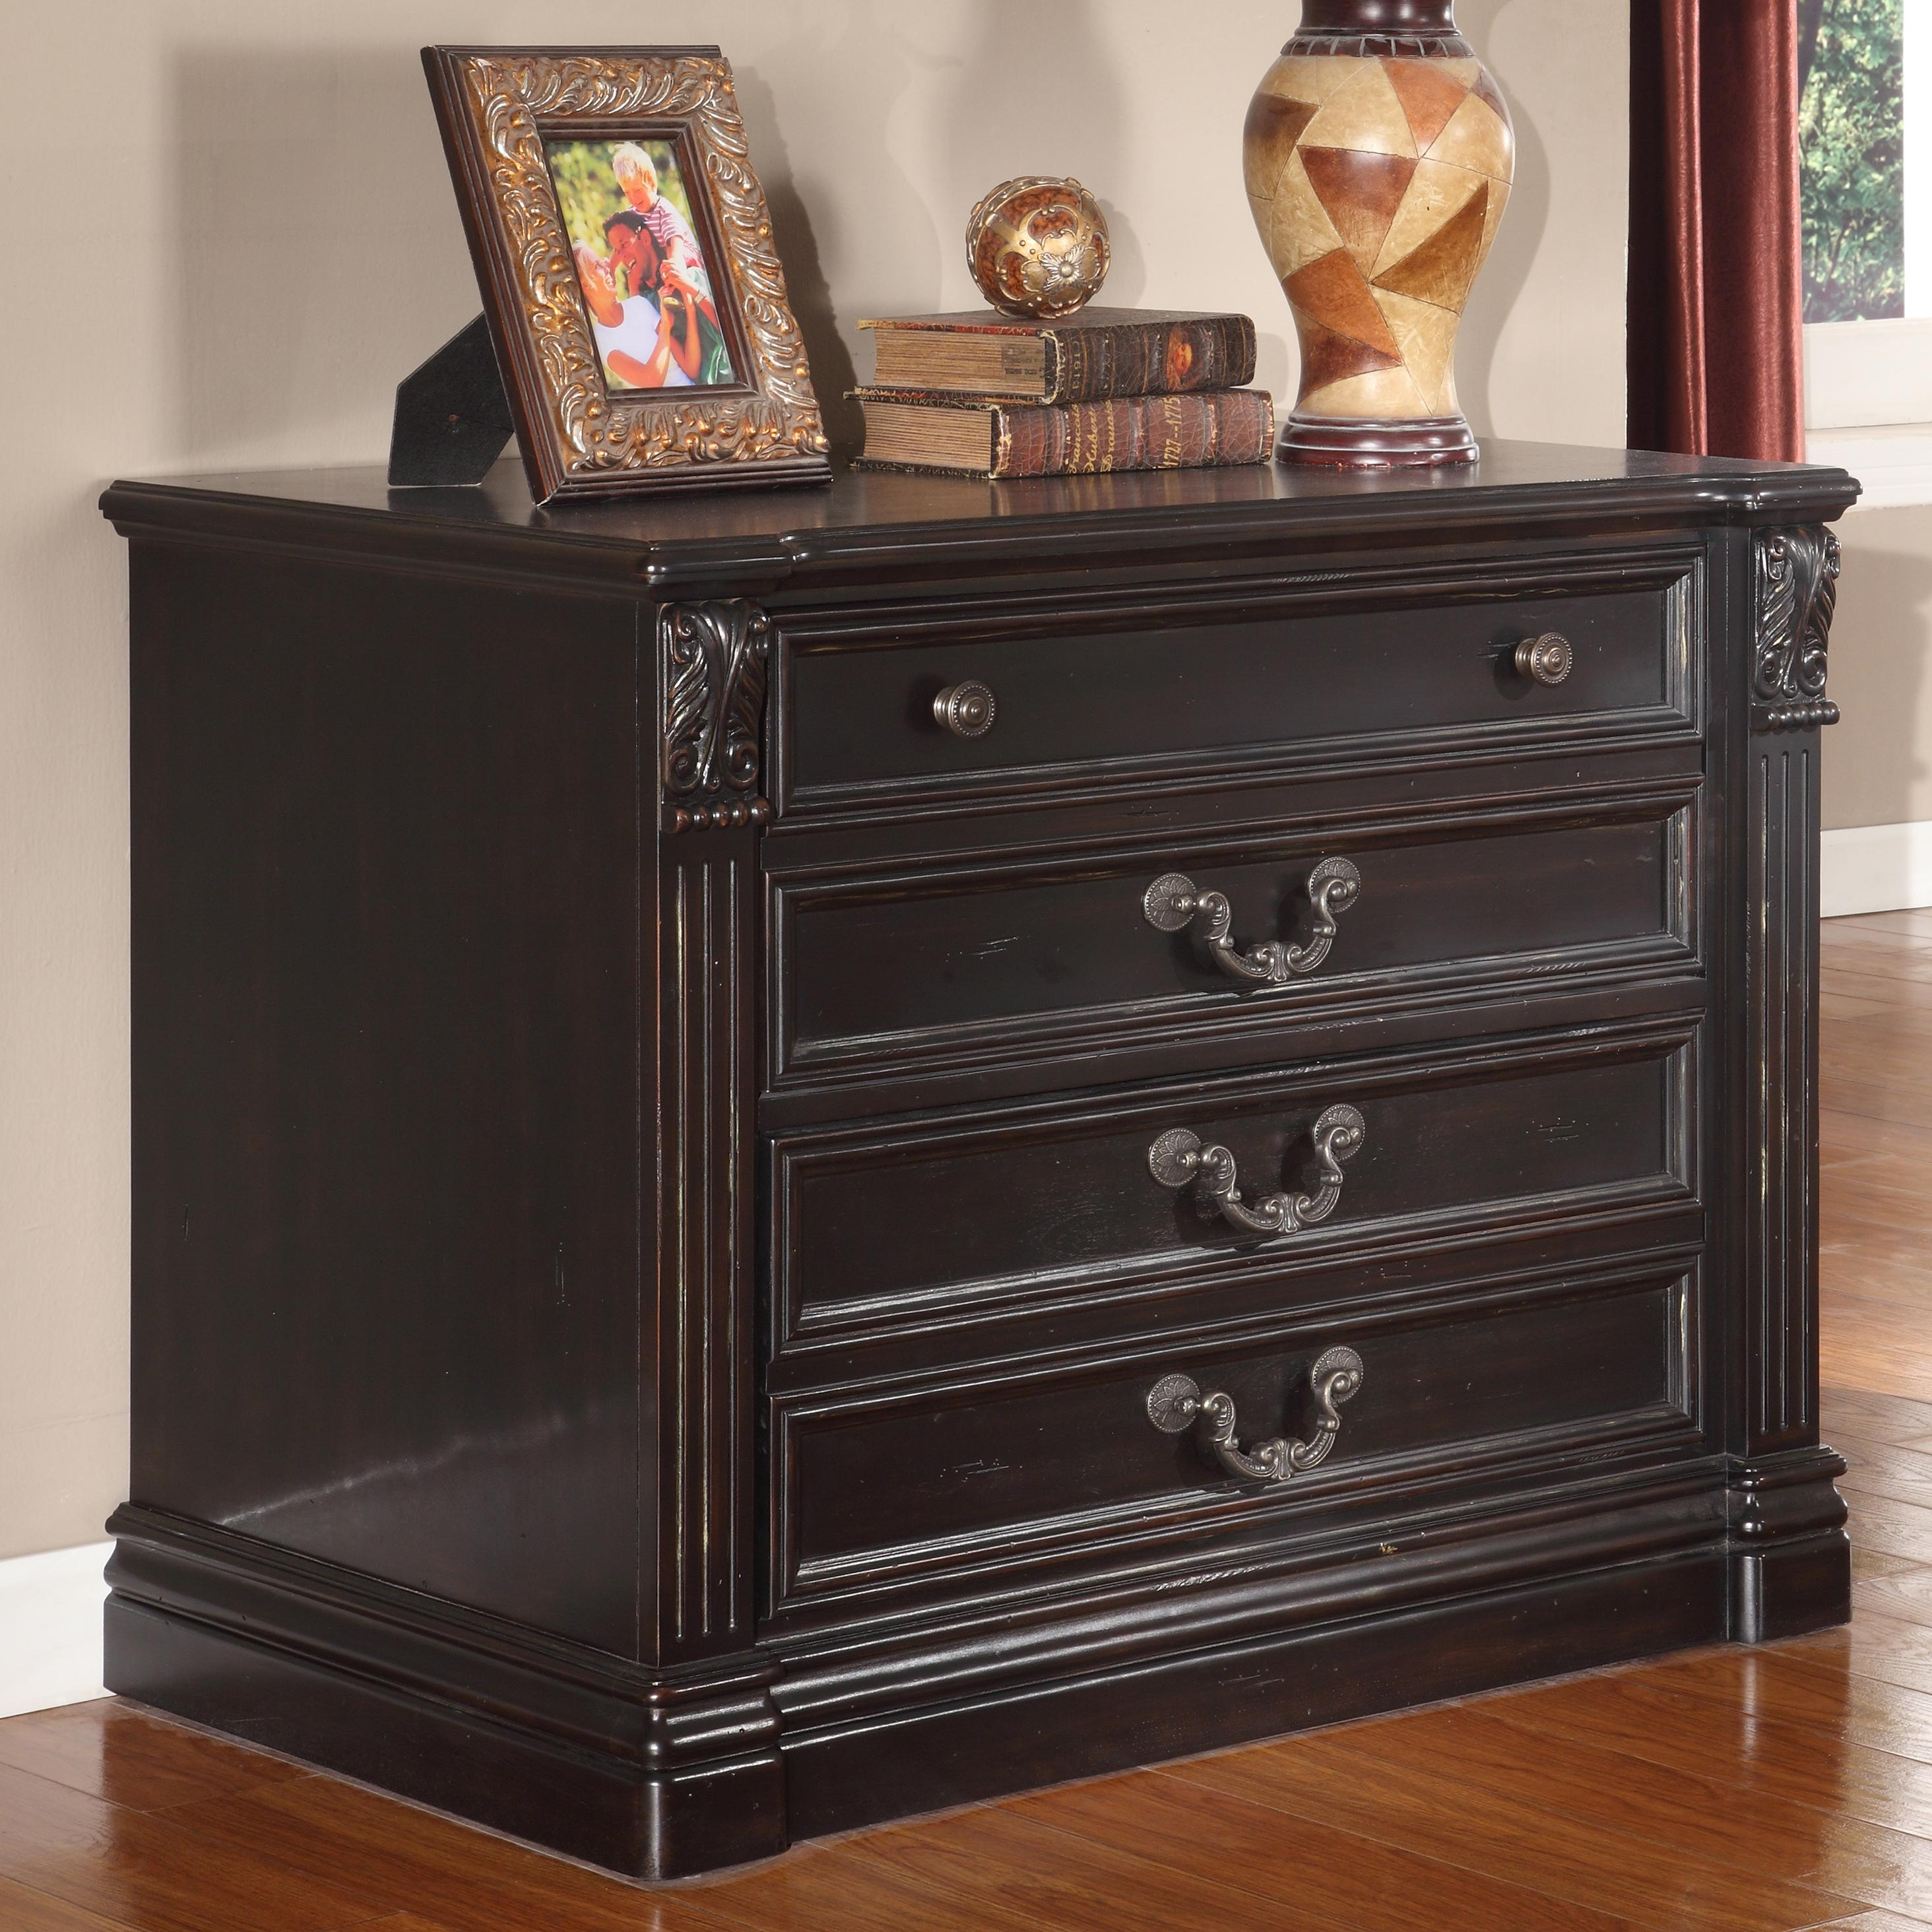 Parker house palazzo traditional lateral file wayside for Wayside furniture